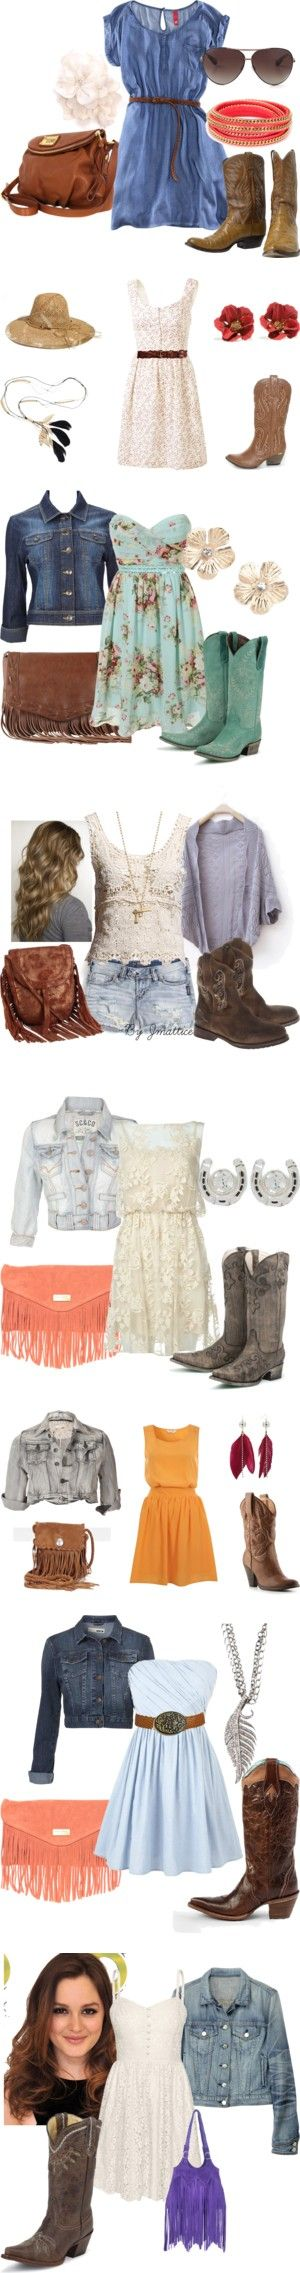 southern outfits- they are all belted and fitted that's key to making these looks work without looking pregnant.